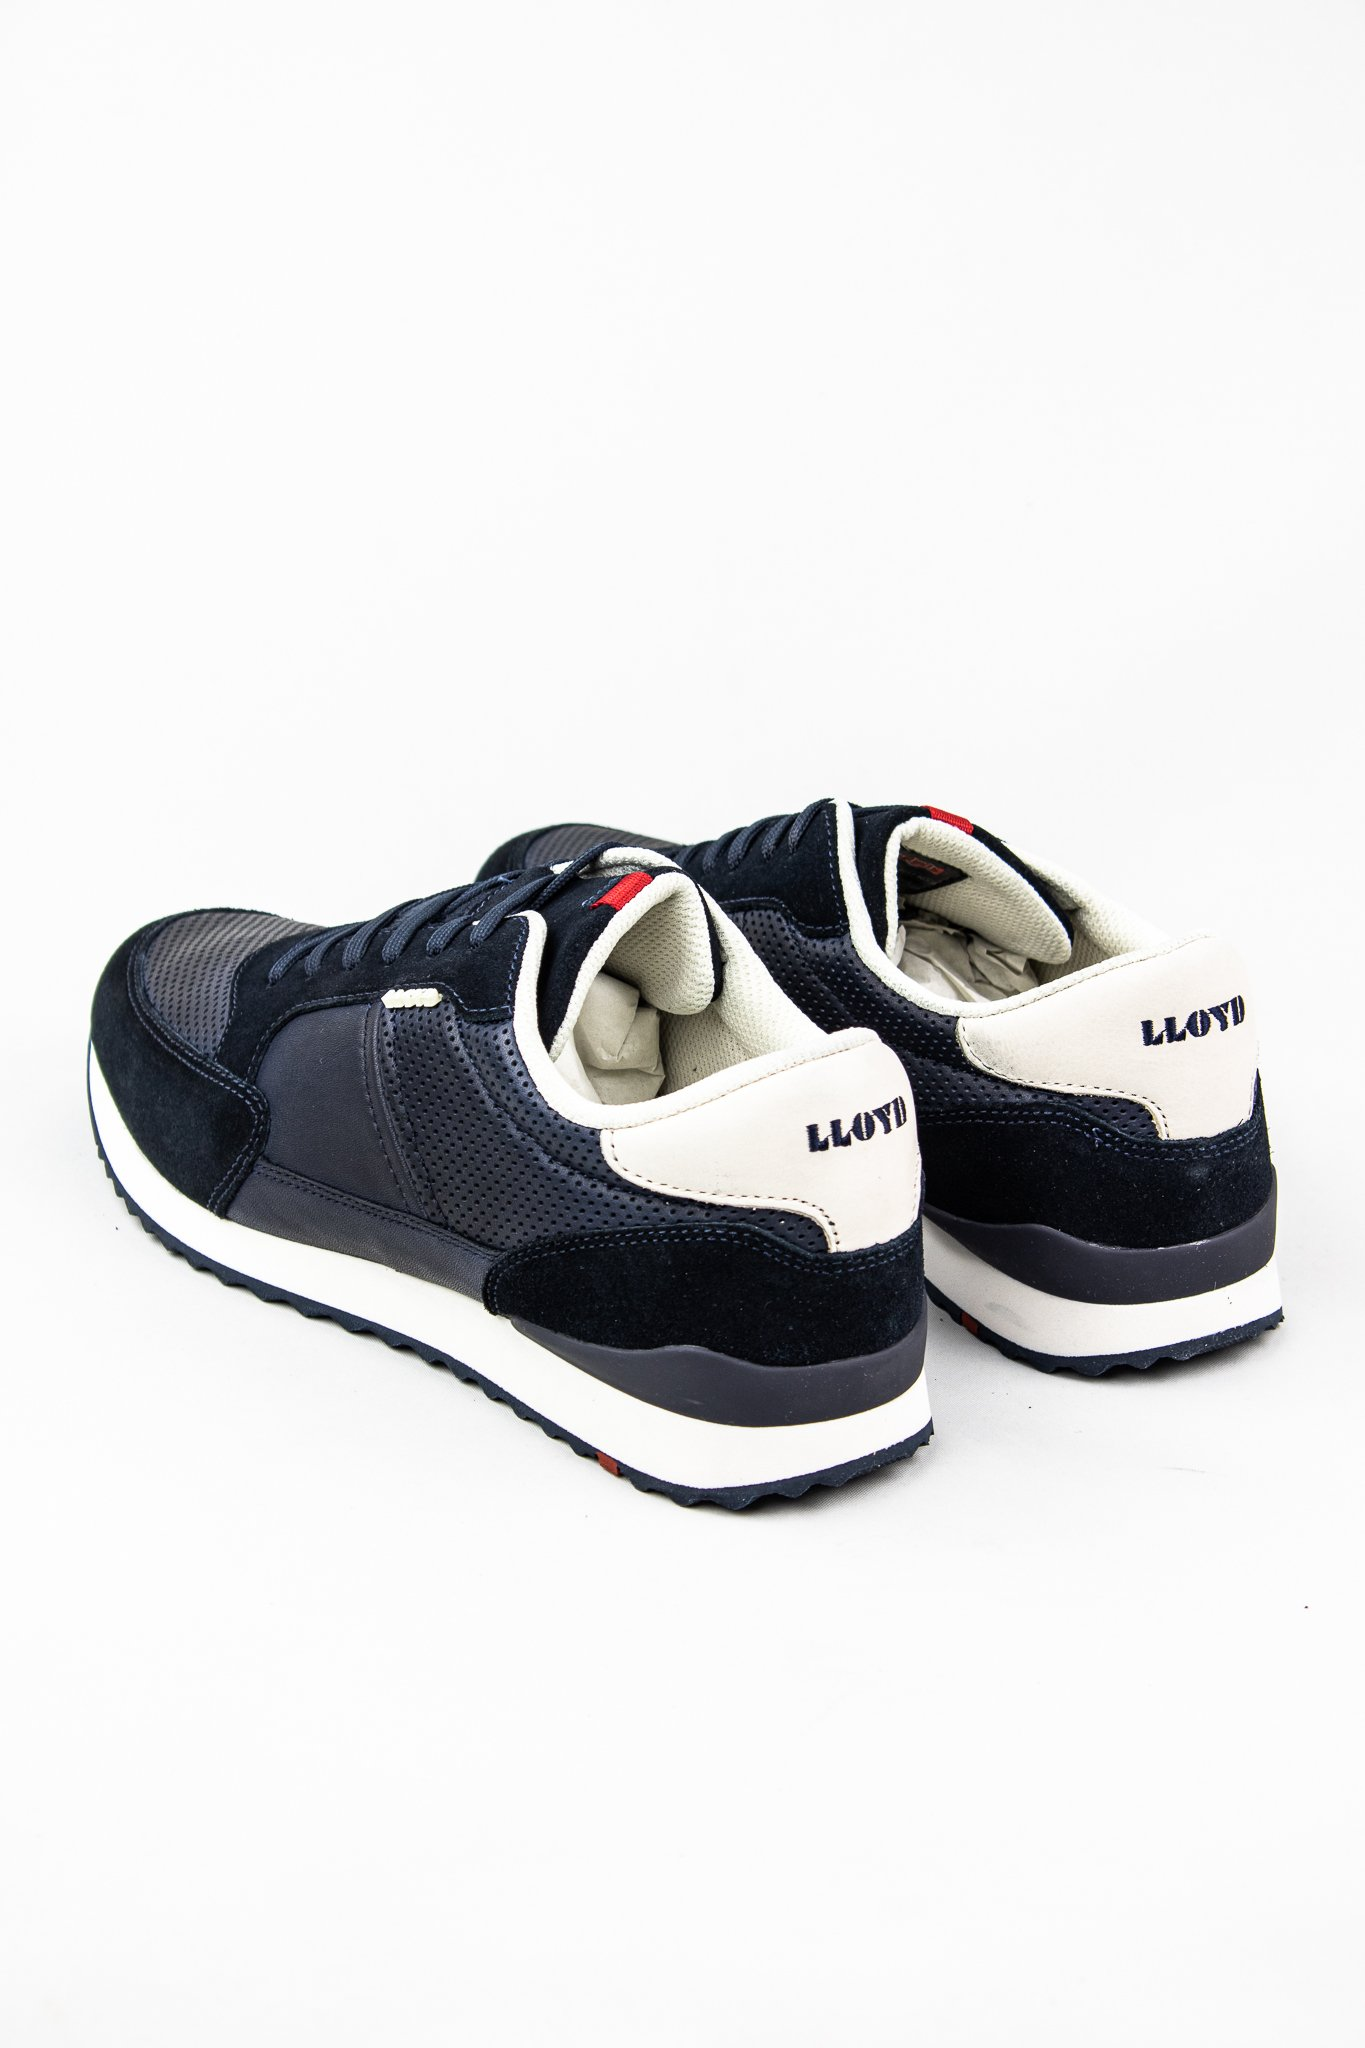 Lloyd Ellard | Navy Leather Casual Shoes with White Contrast